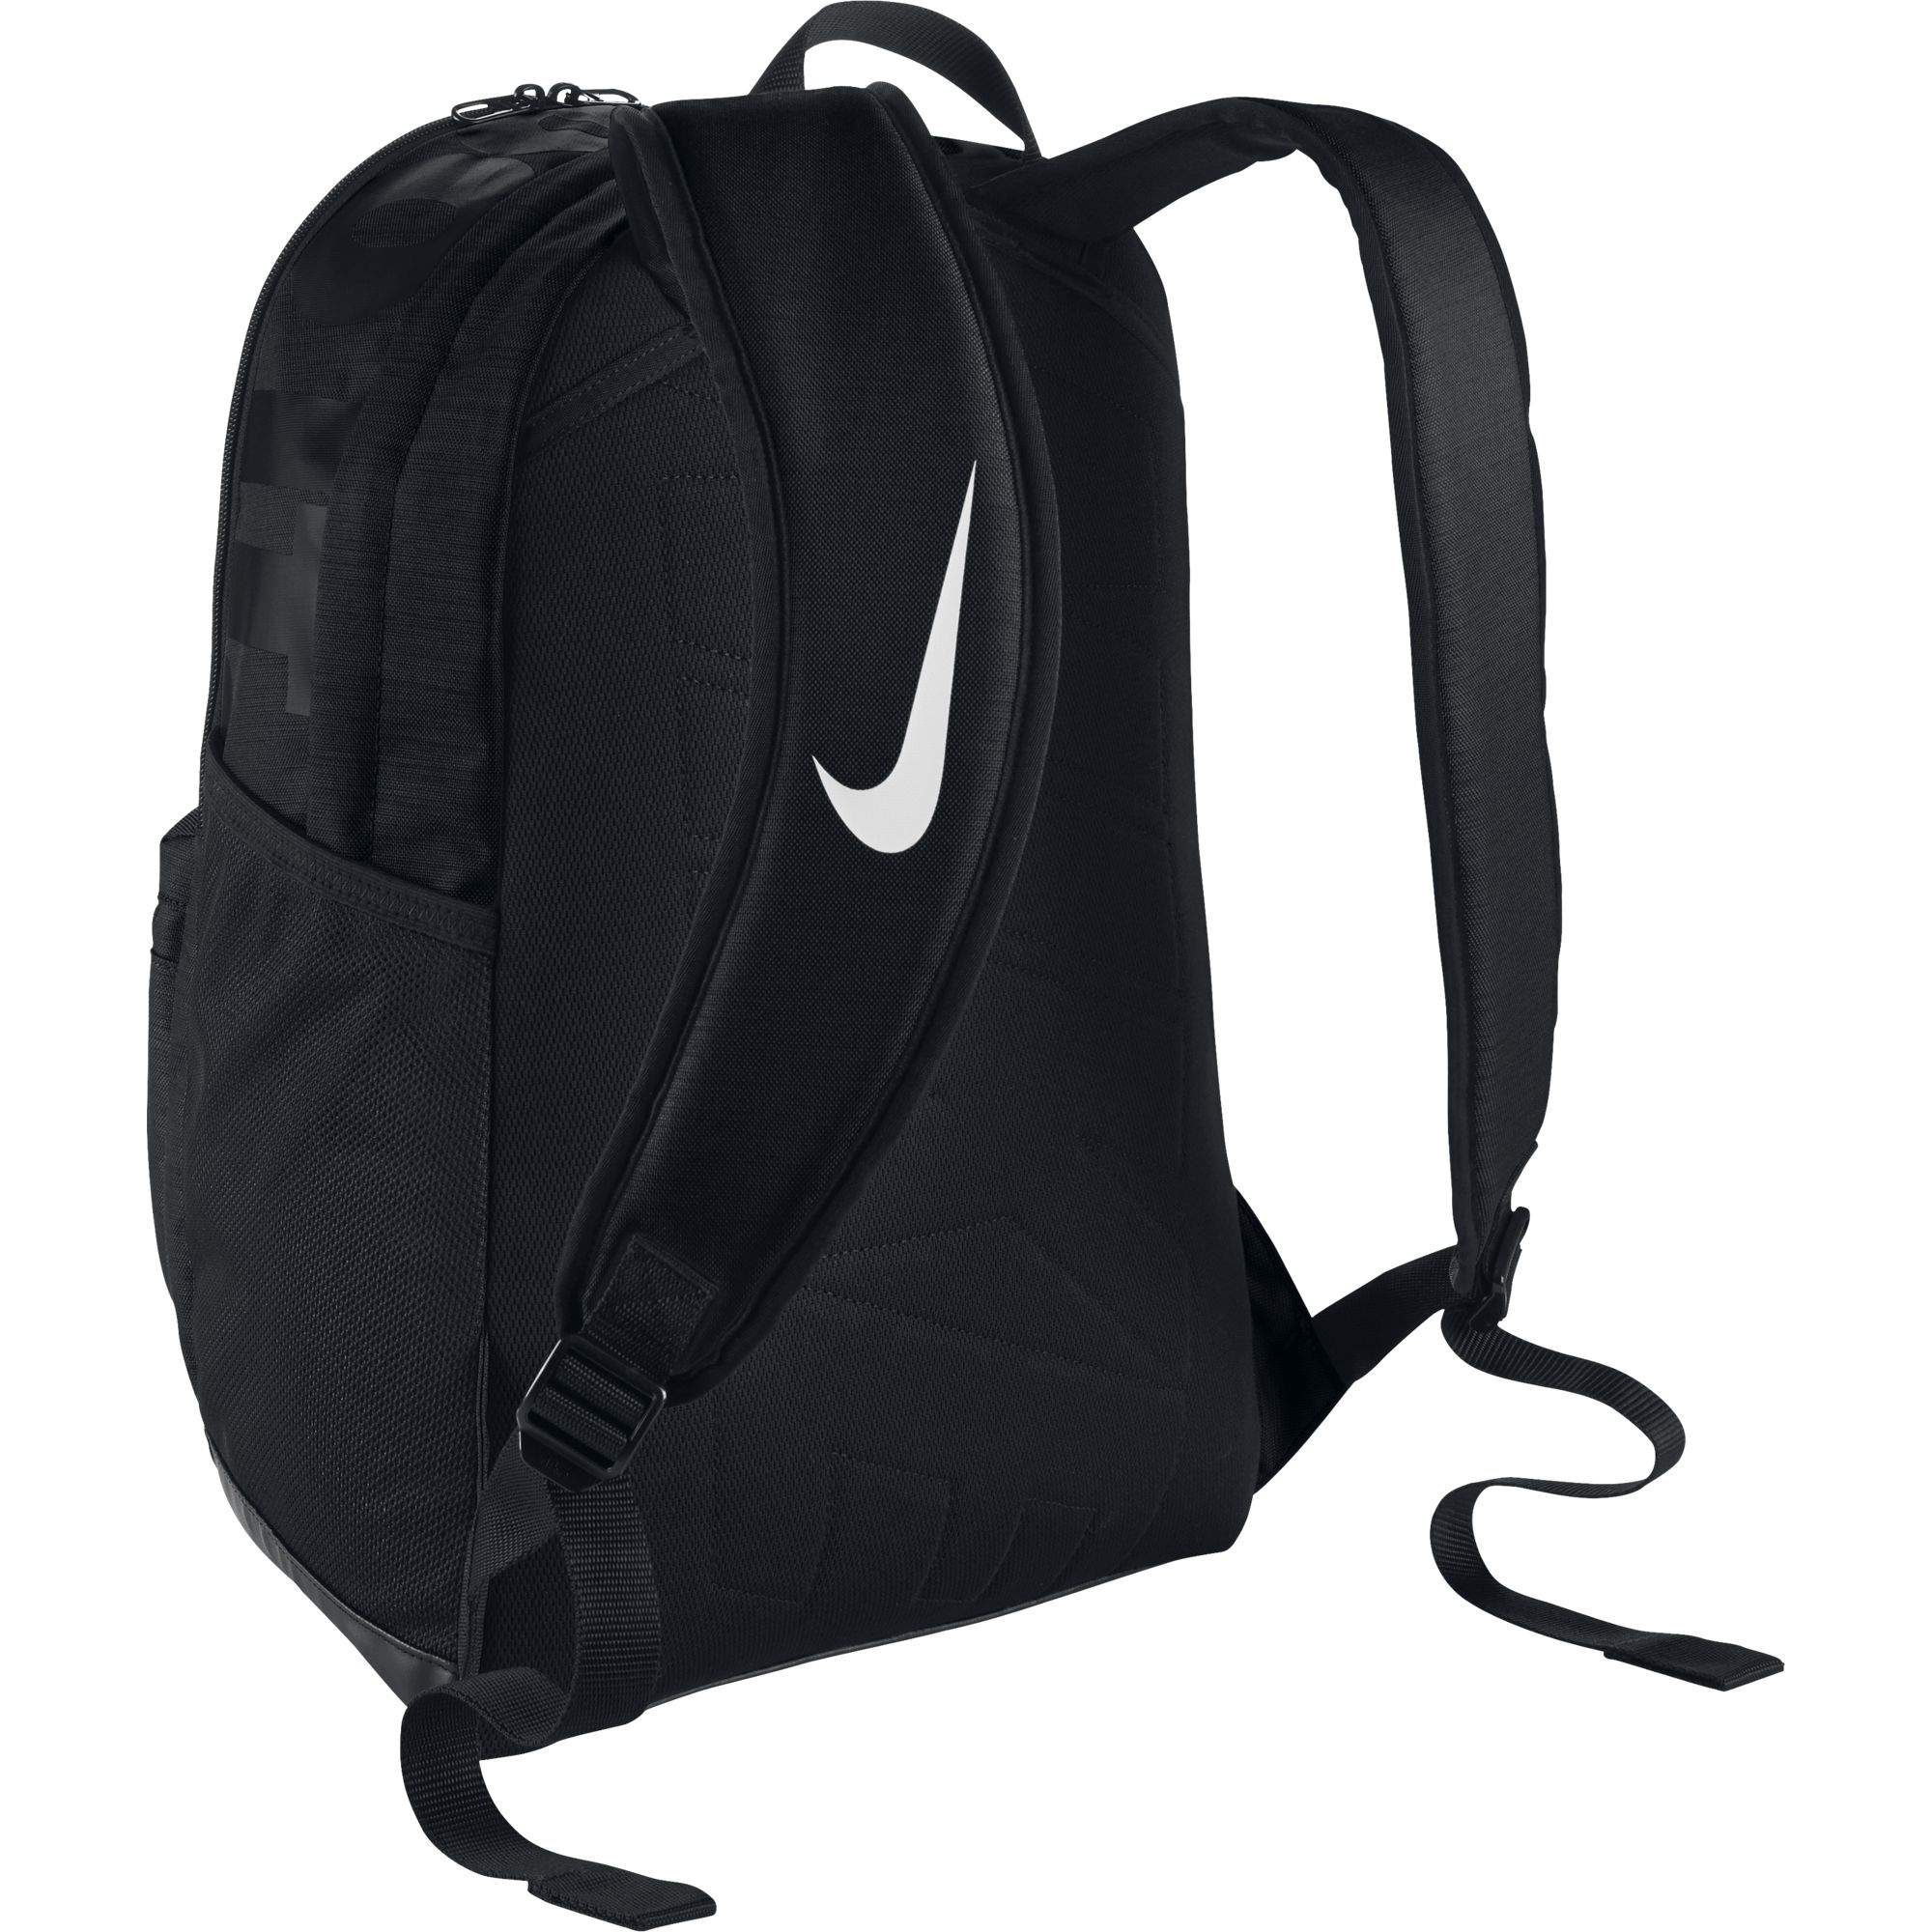 4935a7f4e9a77 ... plecak Nike Brasilia (Medium) Training Backpack BA5329 010 ...